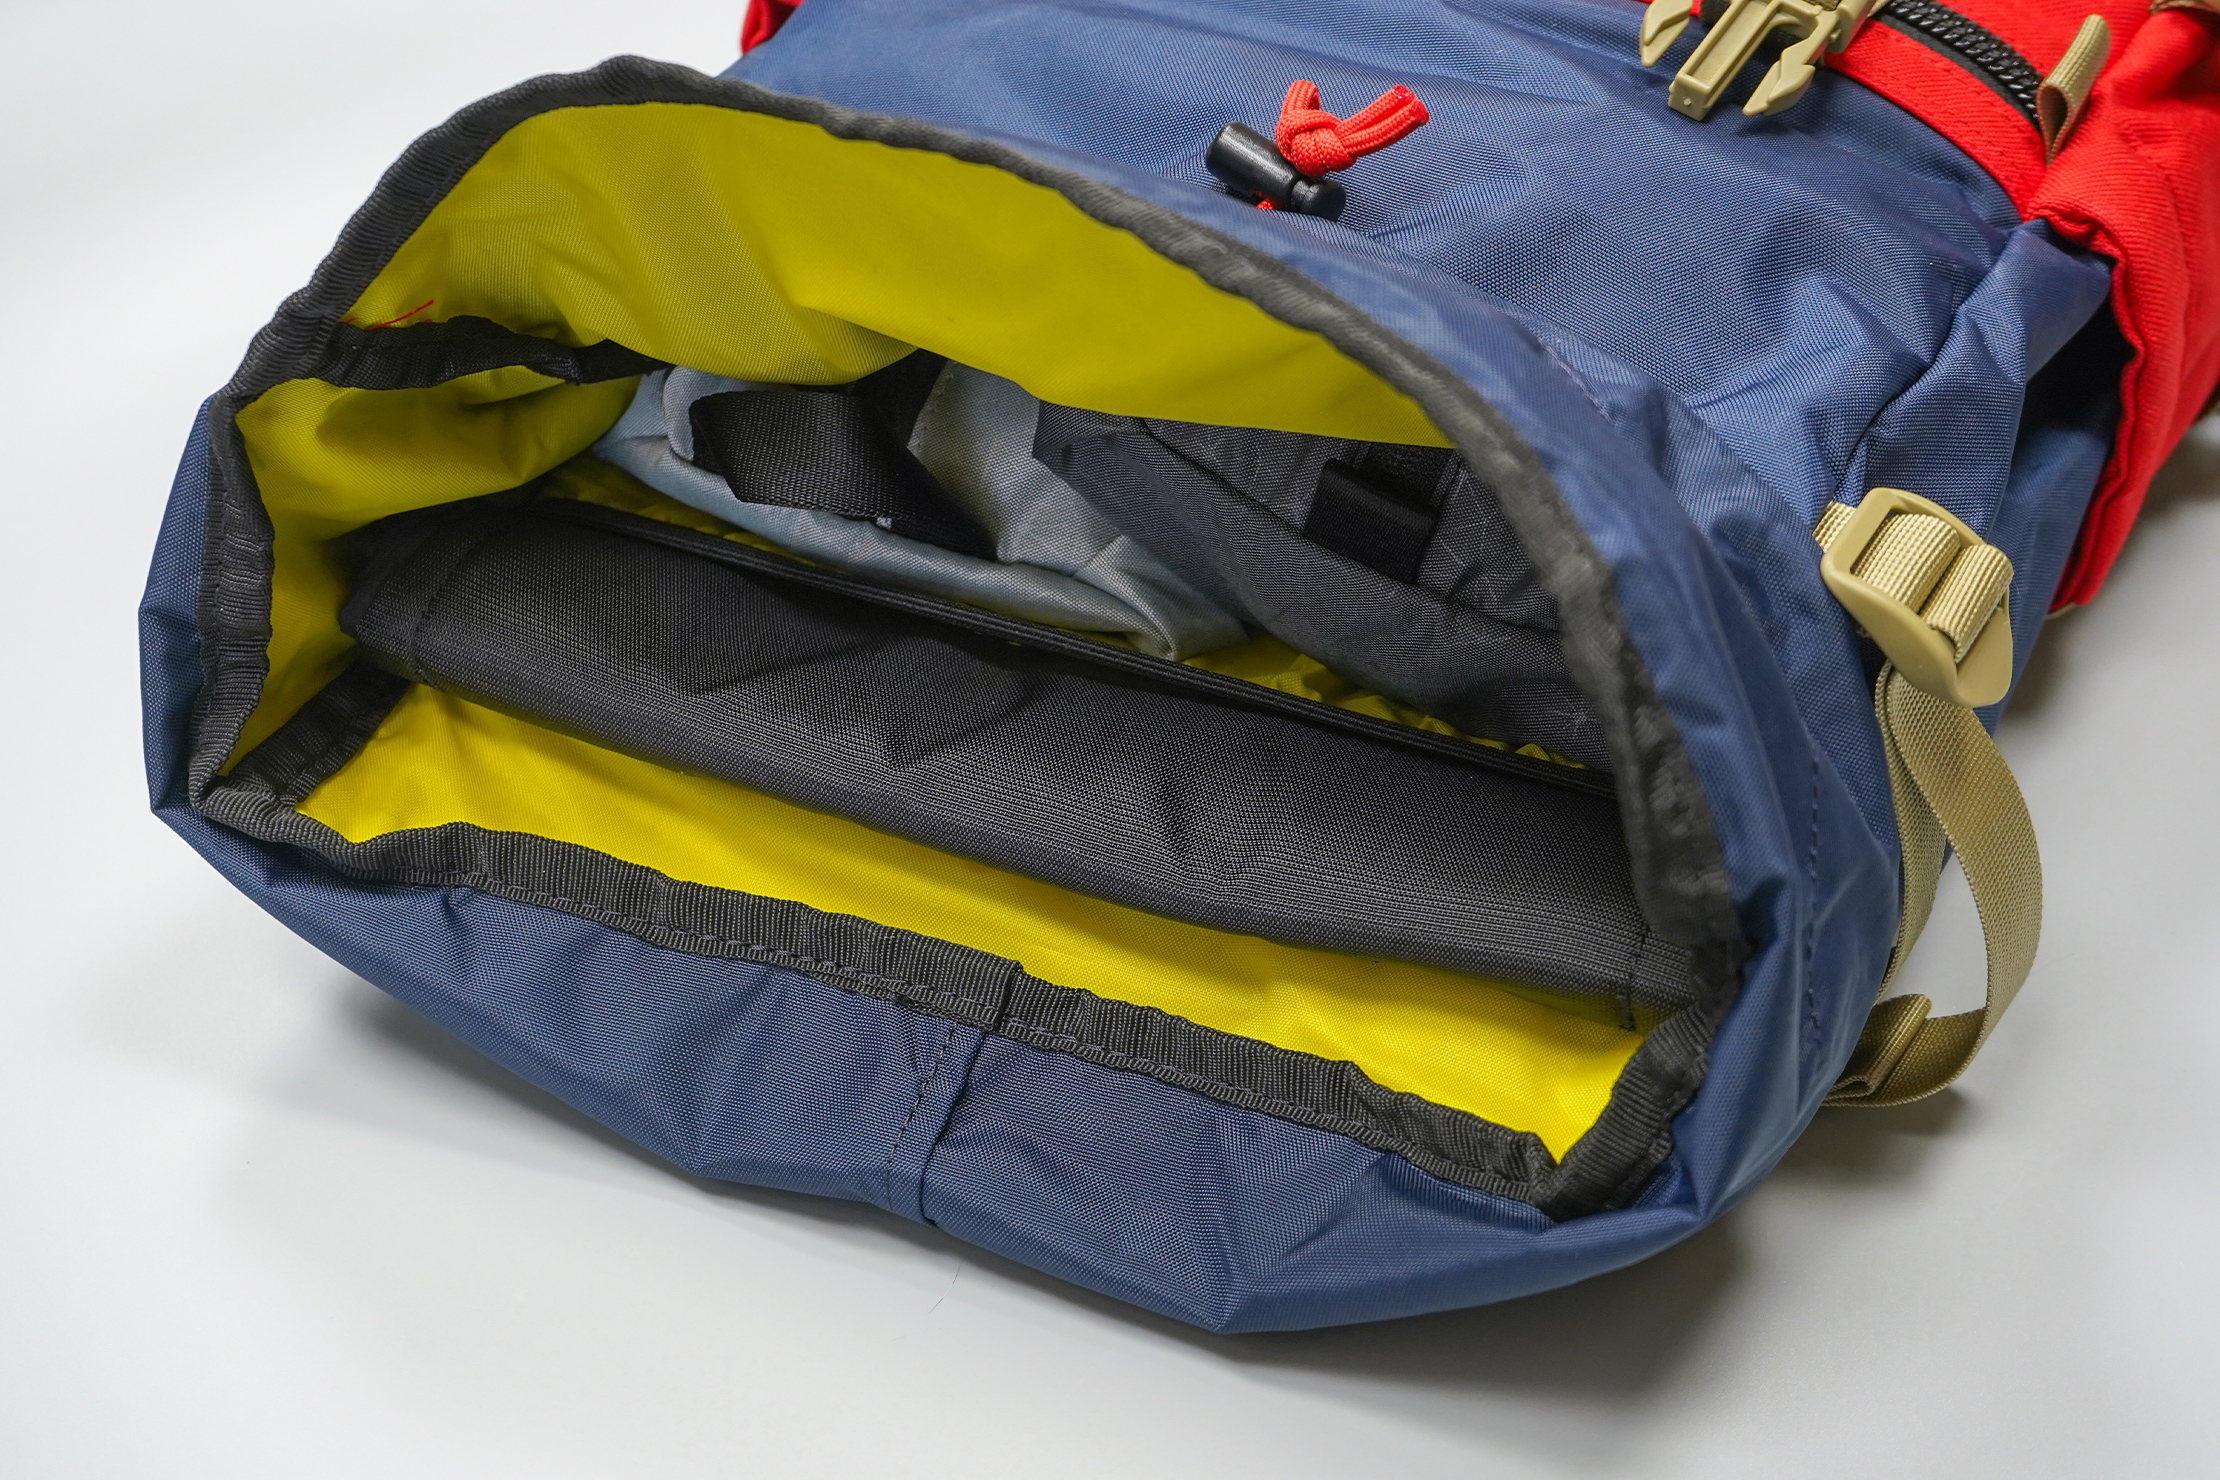 Topo Designs Rover Pack Classic | The bare but bright interior makes visibility easy for a top loader